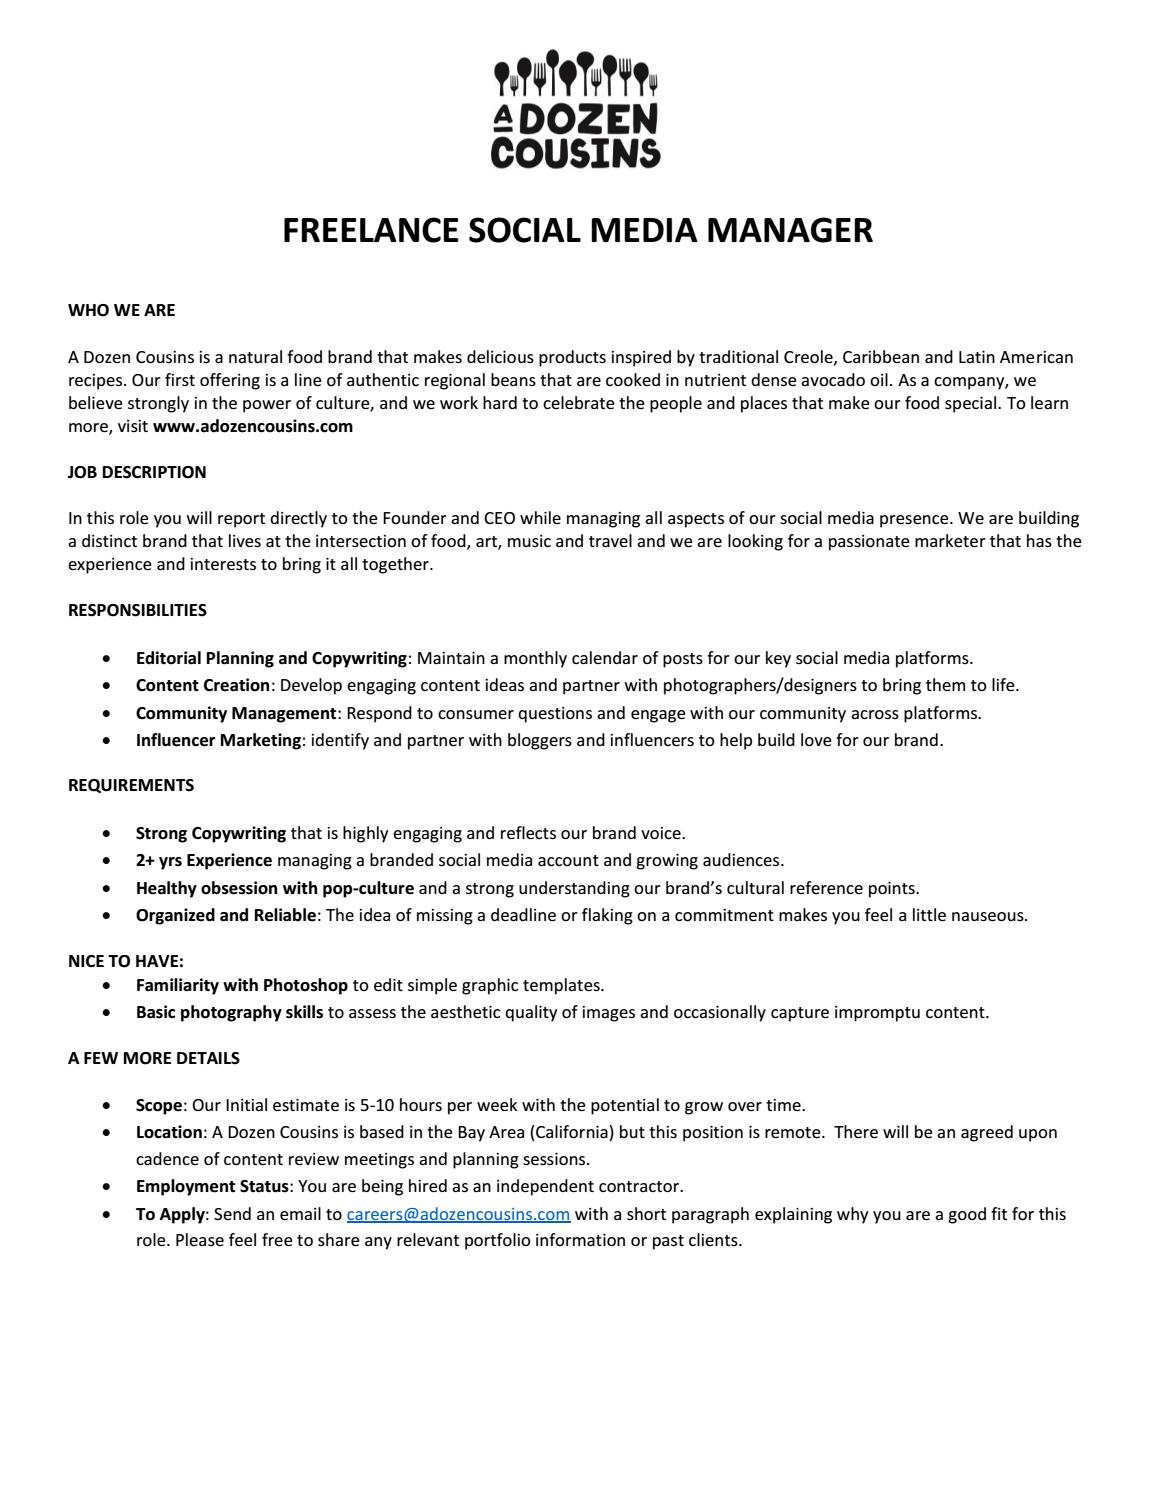 A Dozen Cousins Freelance Social Media Manager (Remote) by